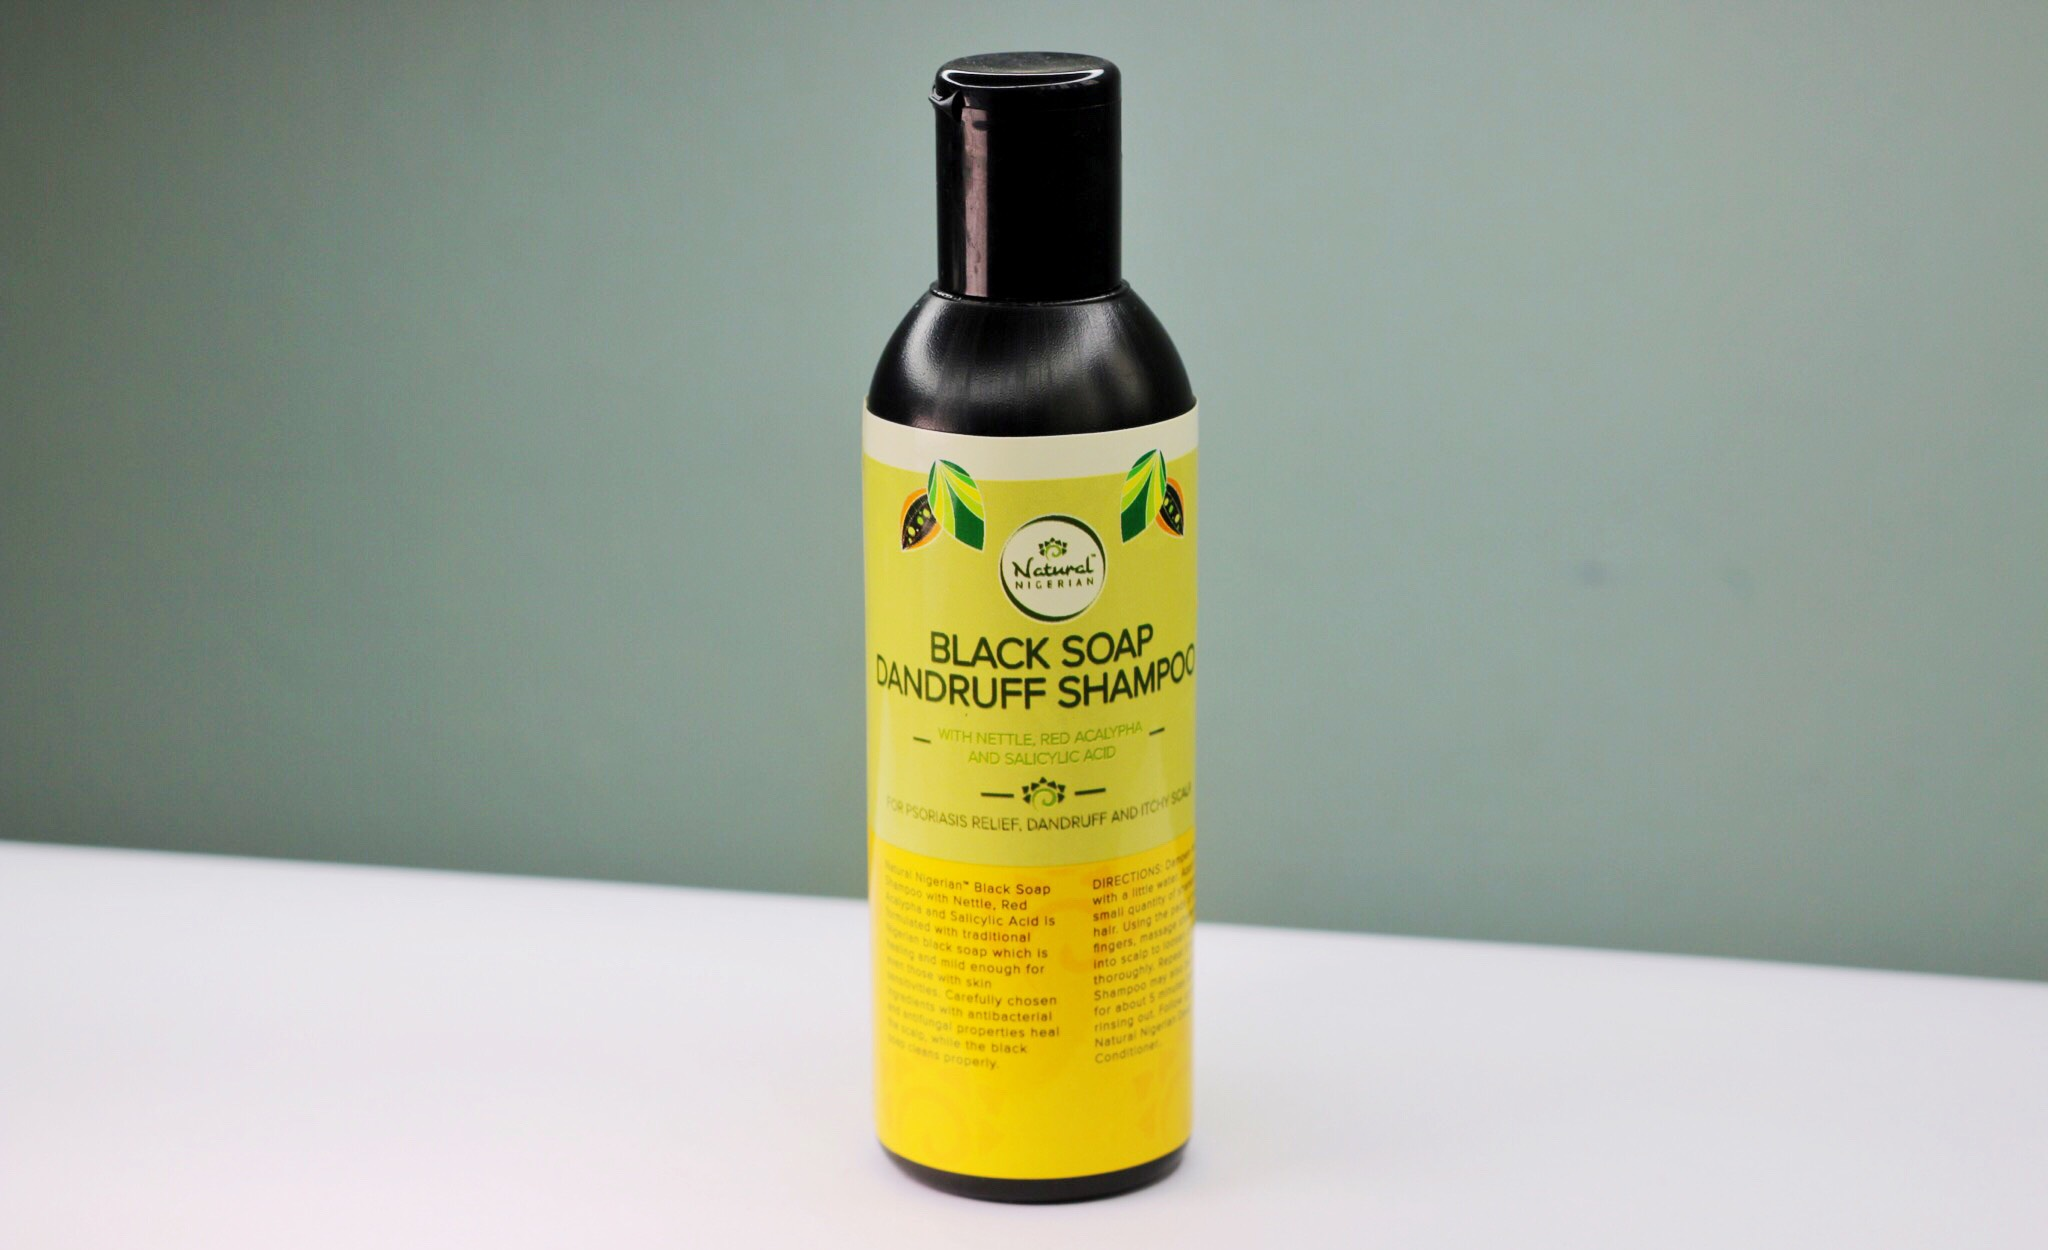 Black Soap Dandruff Shampoo